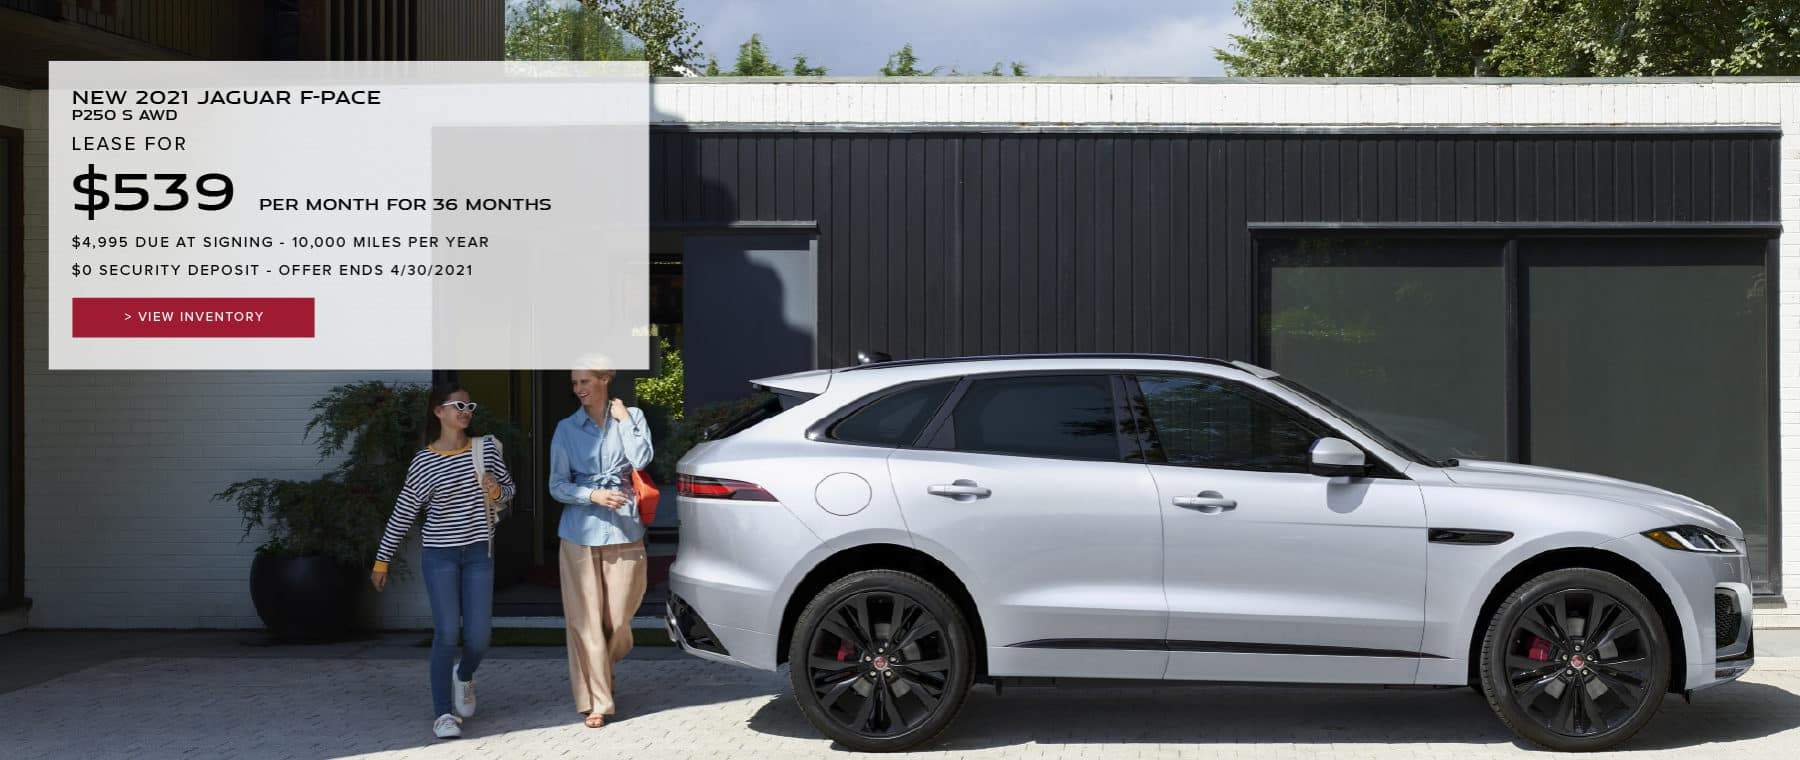 NEW 2021 JAGUAR F-PACE P250 S AWD. $539 PER MONTH. 36 MONTH LEASE TERM. $4,995 CASH DUE AT SIGNING. $0 SECURITY DEPOSIT. 10,000 MILES PER YEAR. EXCLUDES RETAILER FEES, TAXES, TITLE AND REGISTRATION FEES, PROCESSING FEE AND ANY EMISSION TESTING CHARGE. OFFER ENDS 4/30/2021. VIEW INVENTORY. SILVER JAGUAR F-PACE PARKED IN DRIVEWAY.